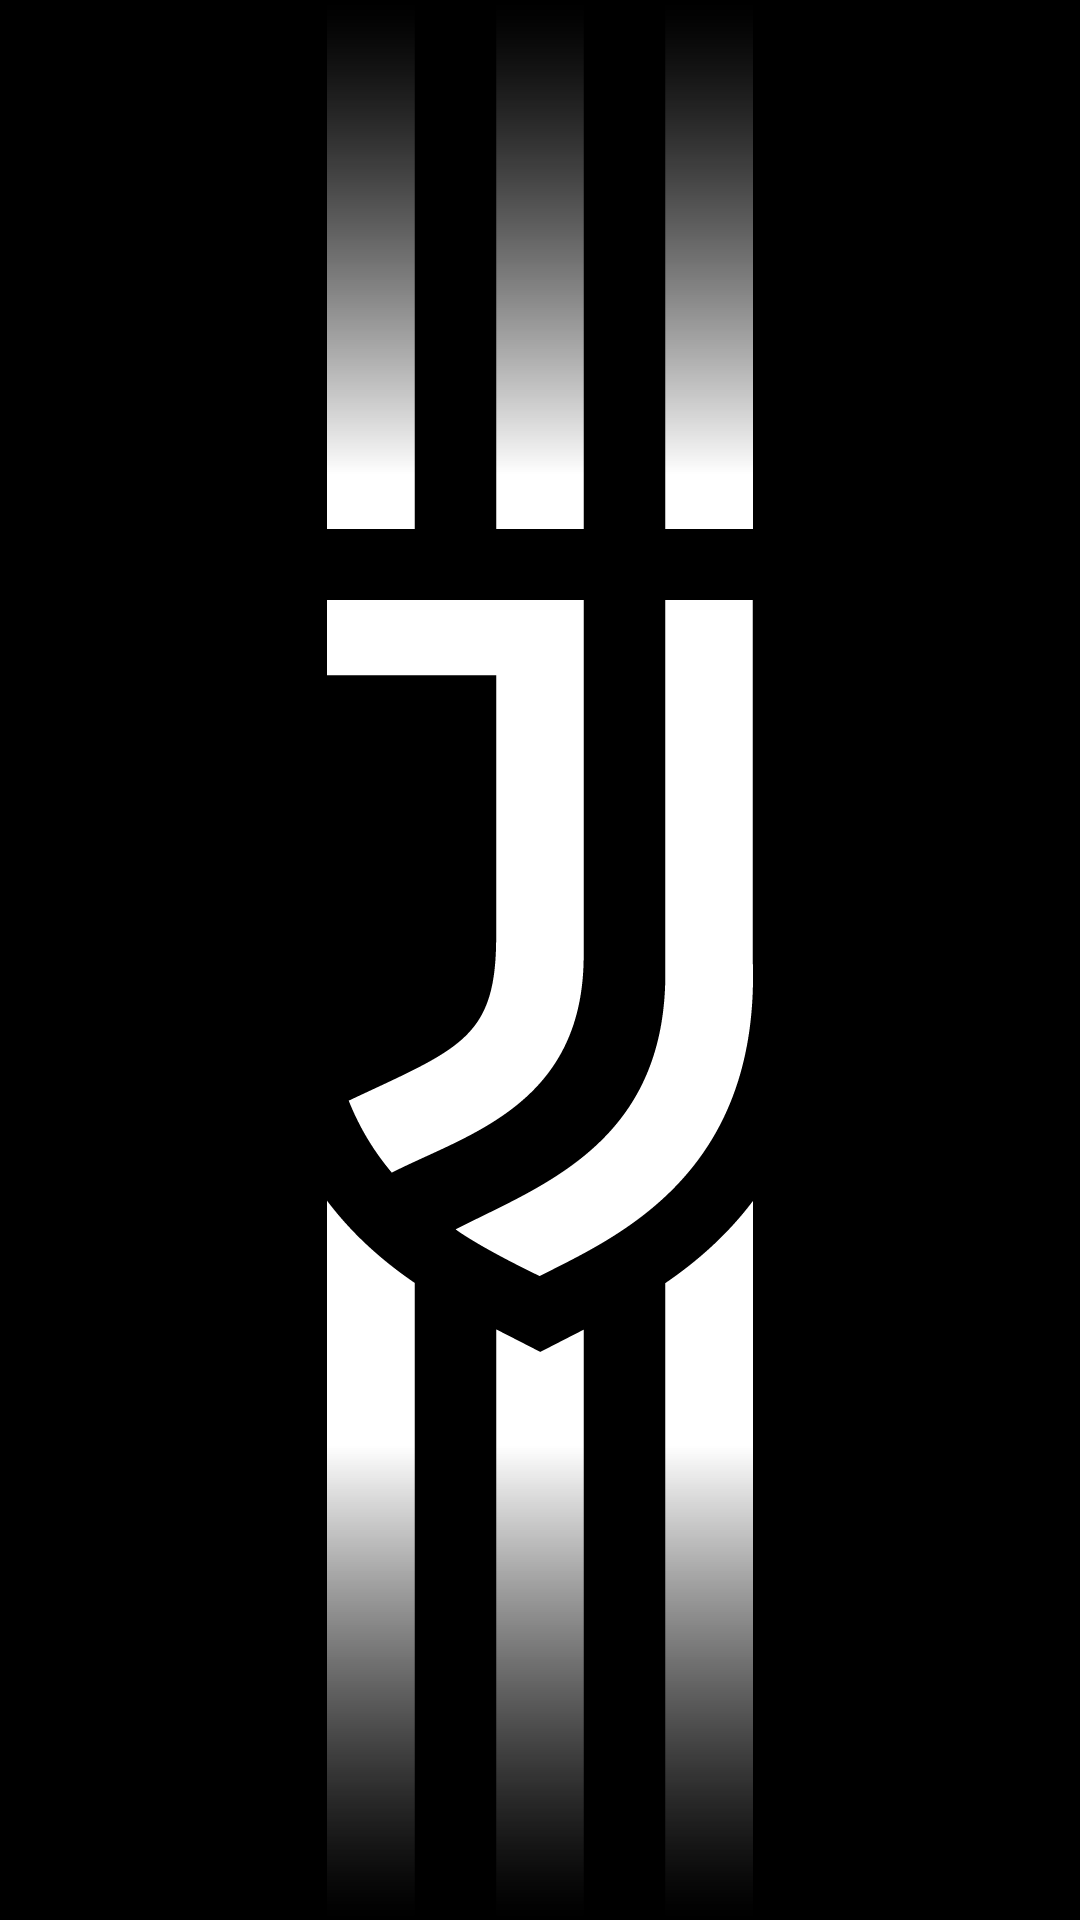 2017 New Logo Juventus Wallpaper For Iphone Best Wallpaper Hd Juventus Wallpapers Ronaldo Wallpapers Juventus